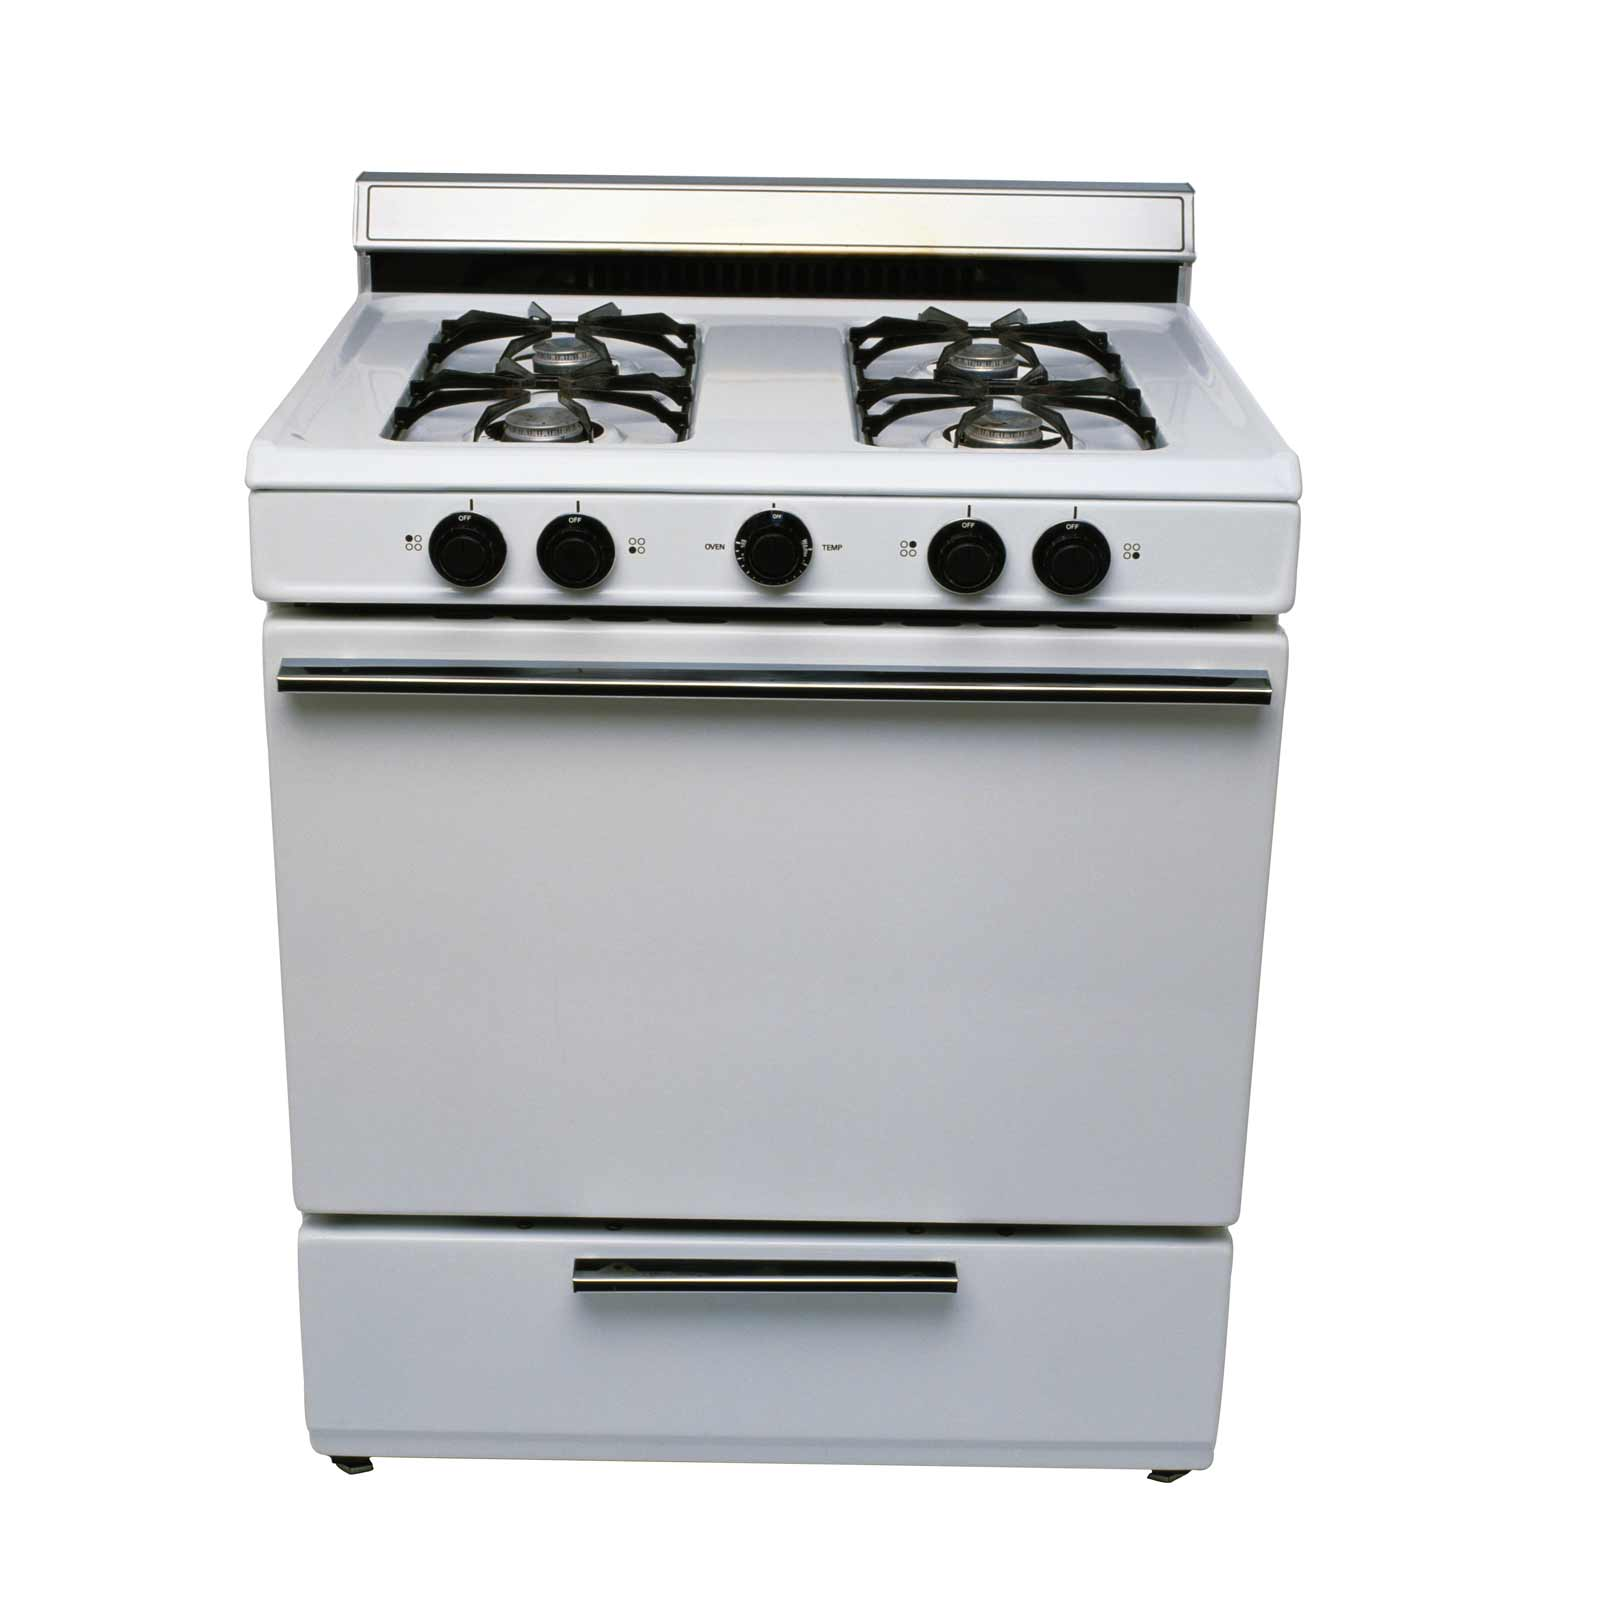 Cooktop Gas Stoves Gas Stove For Home And Kitchen Appliances